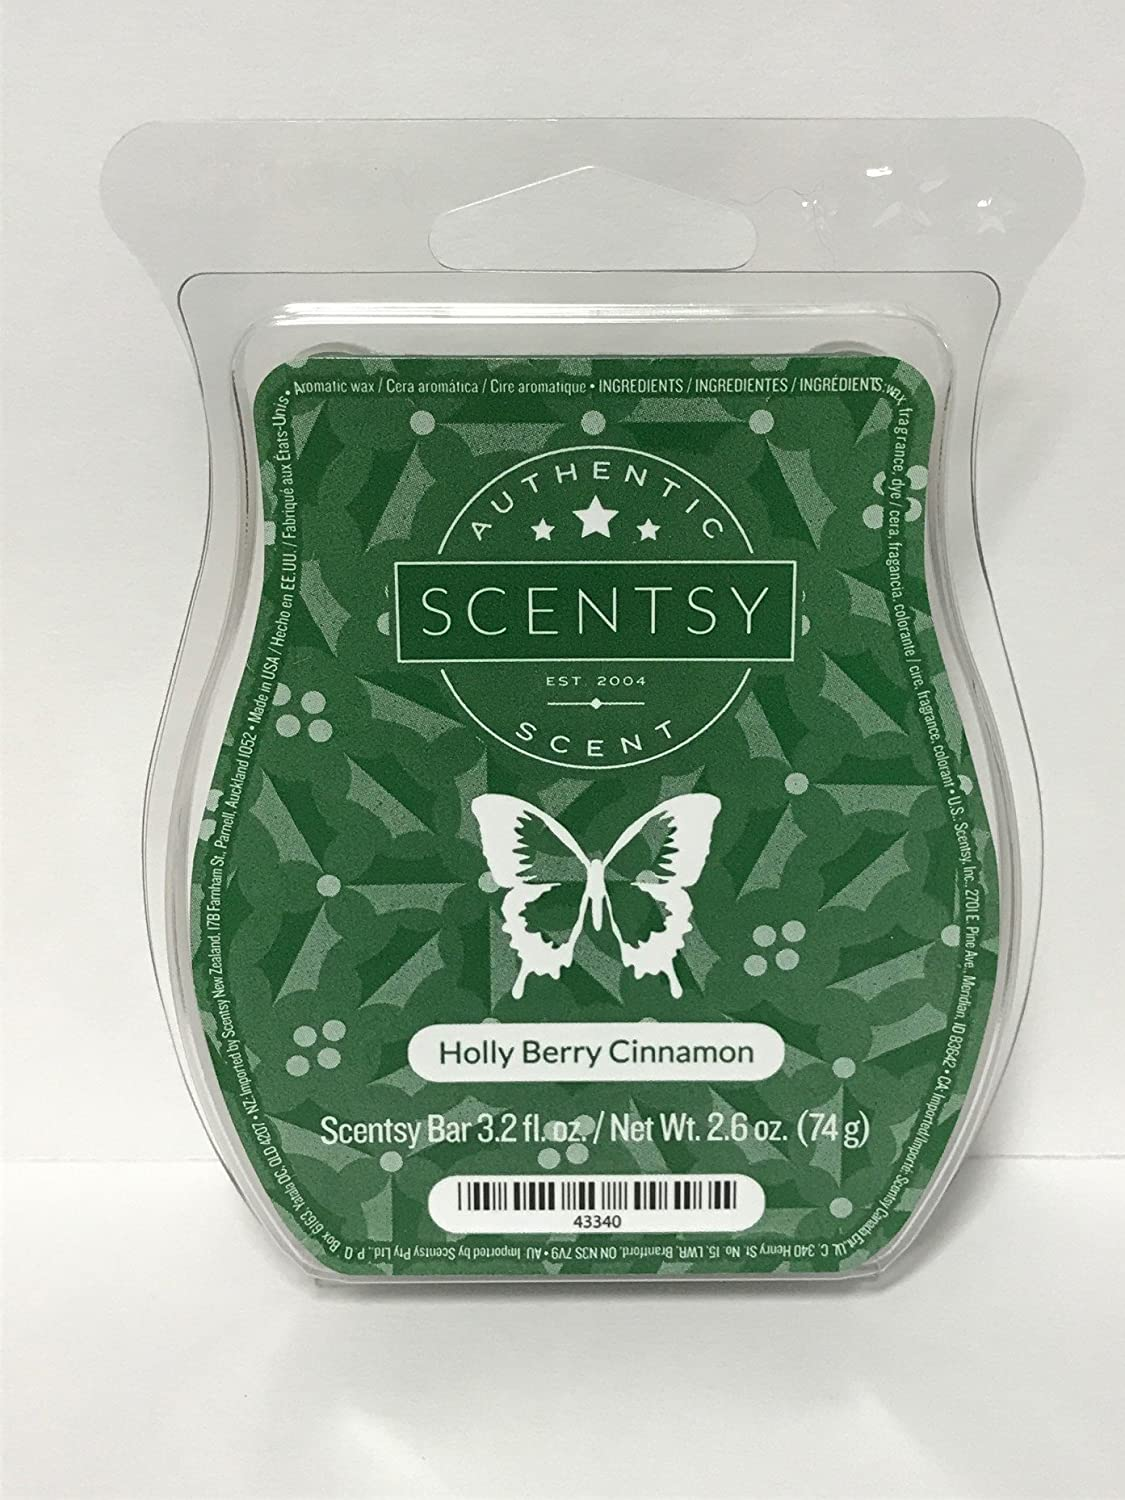 Scentsy Holly Berry Cinnamon Wickless Candle Tart Warmer Wax, 3.2 fl oz